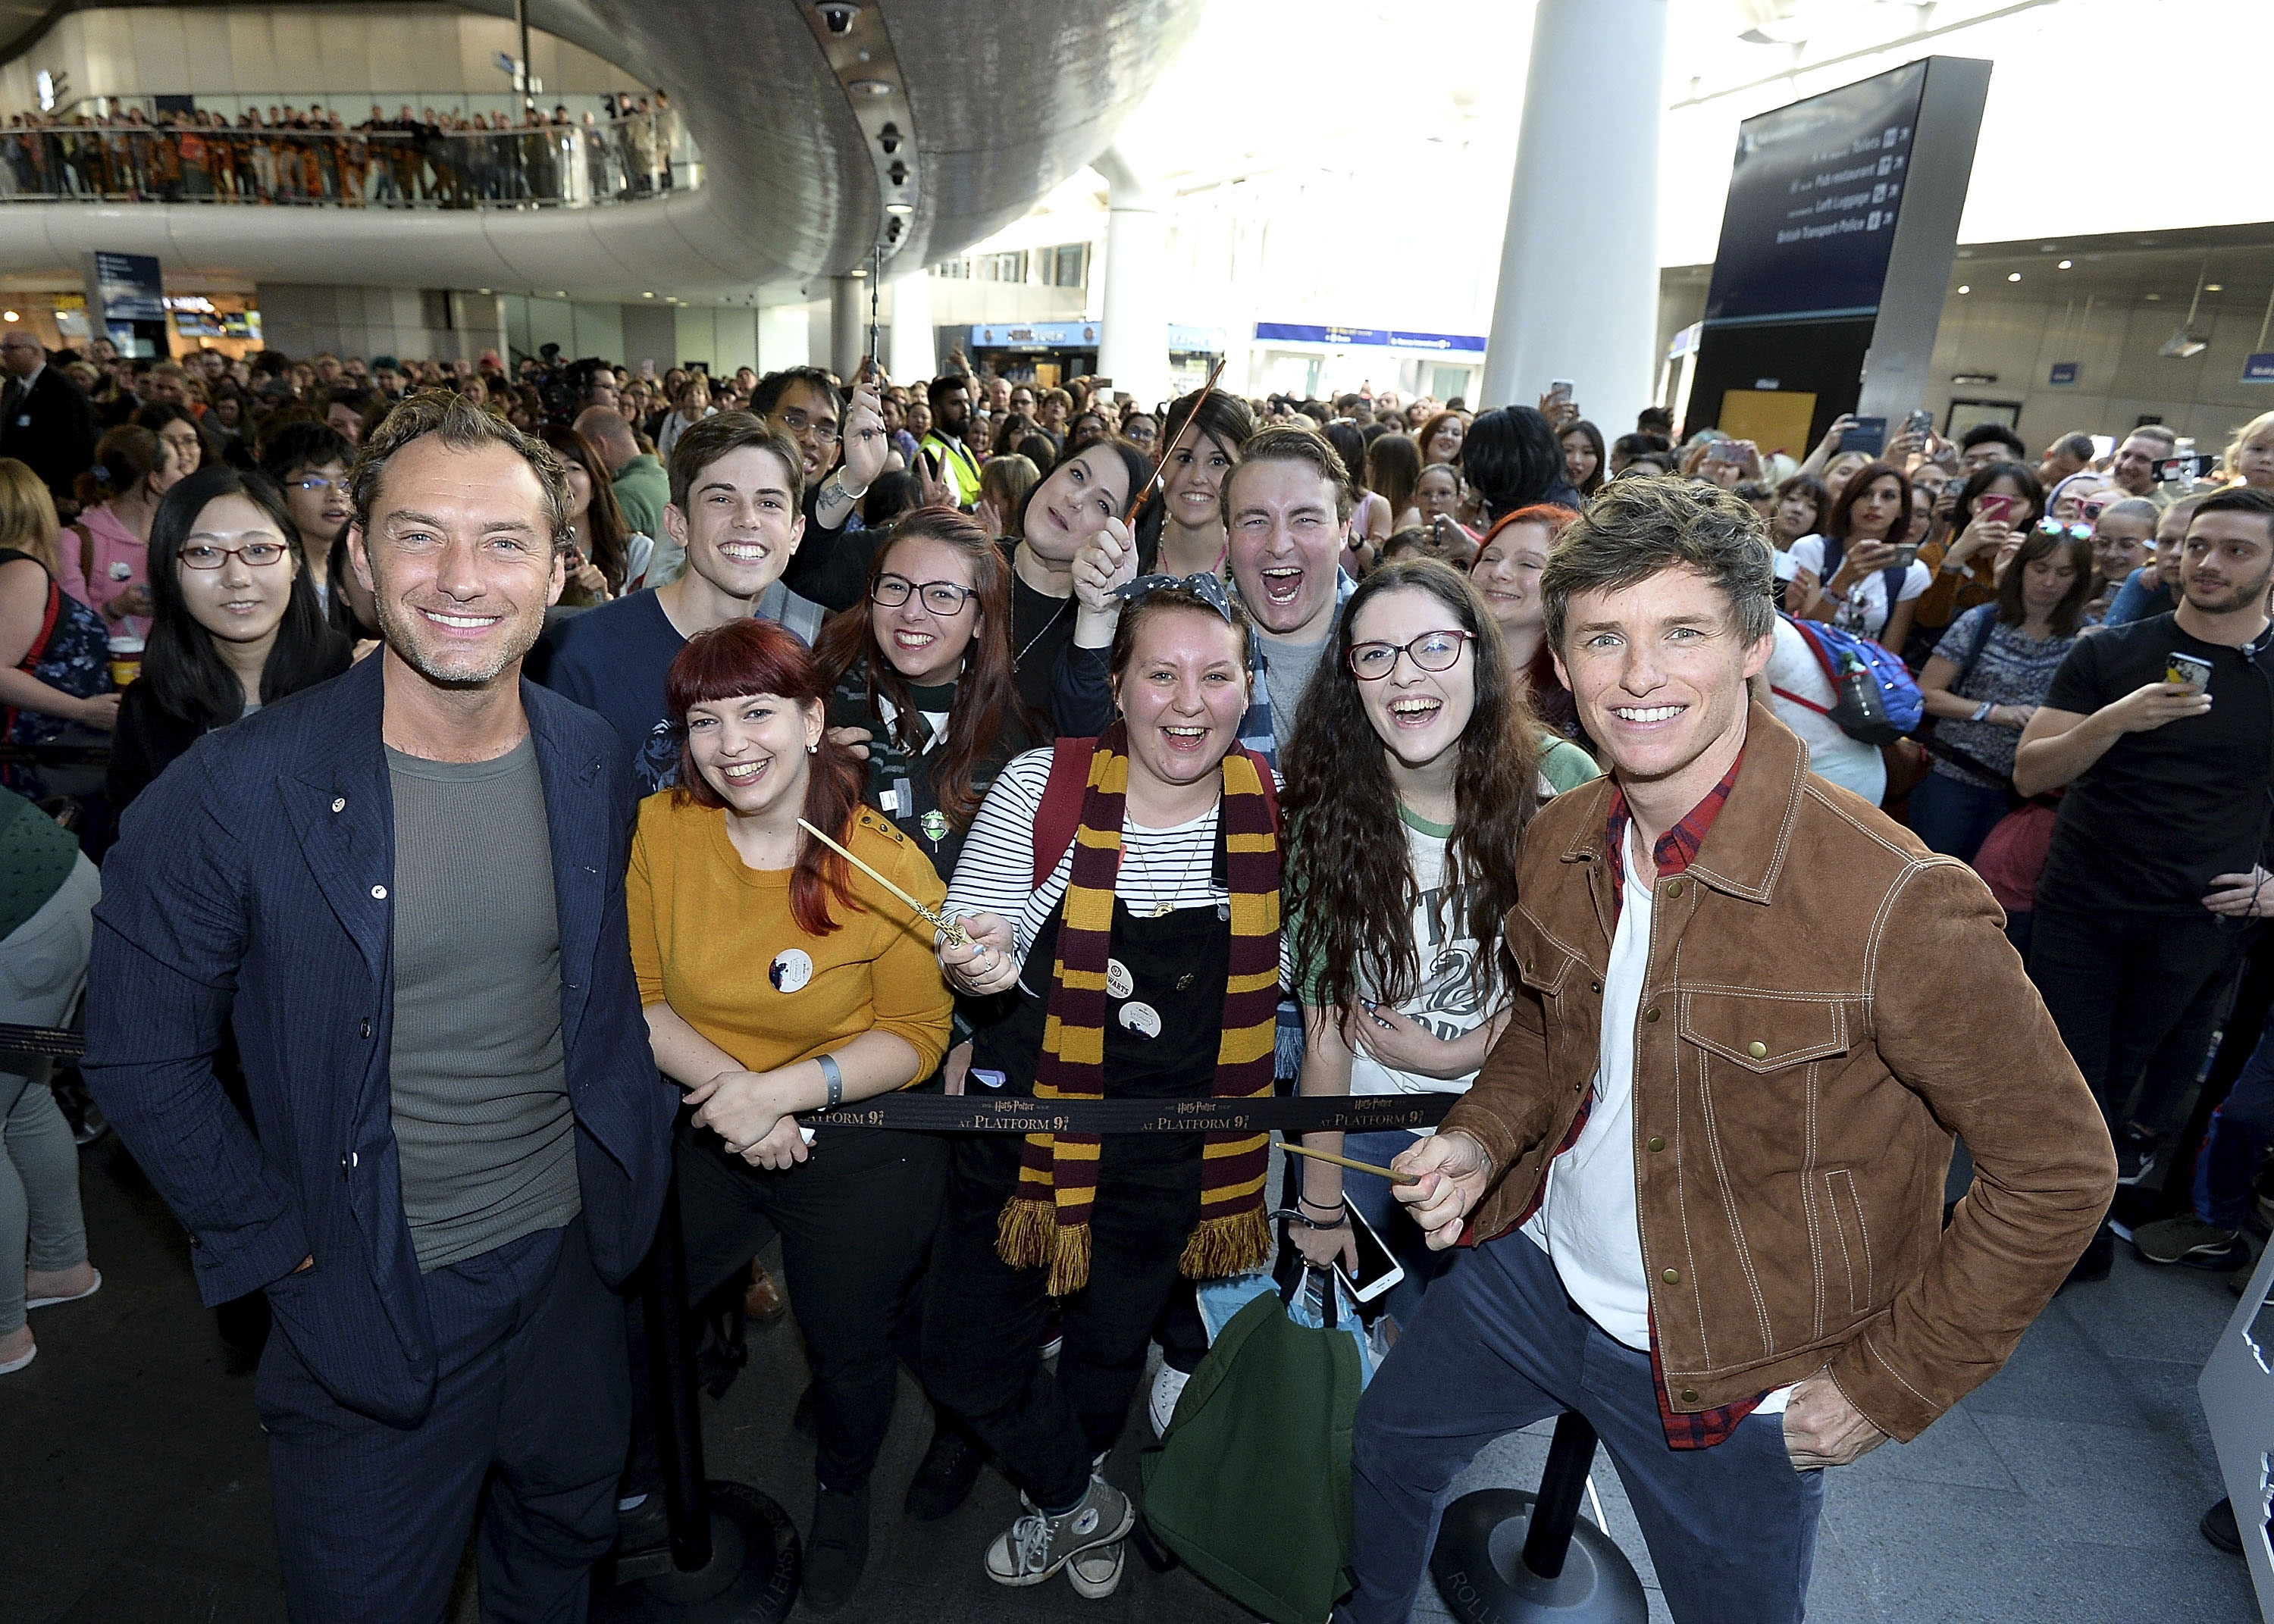 A crowd of fans smiles and cheers as they squeeze into a group photo.